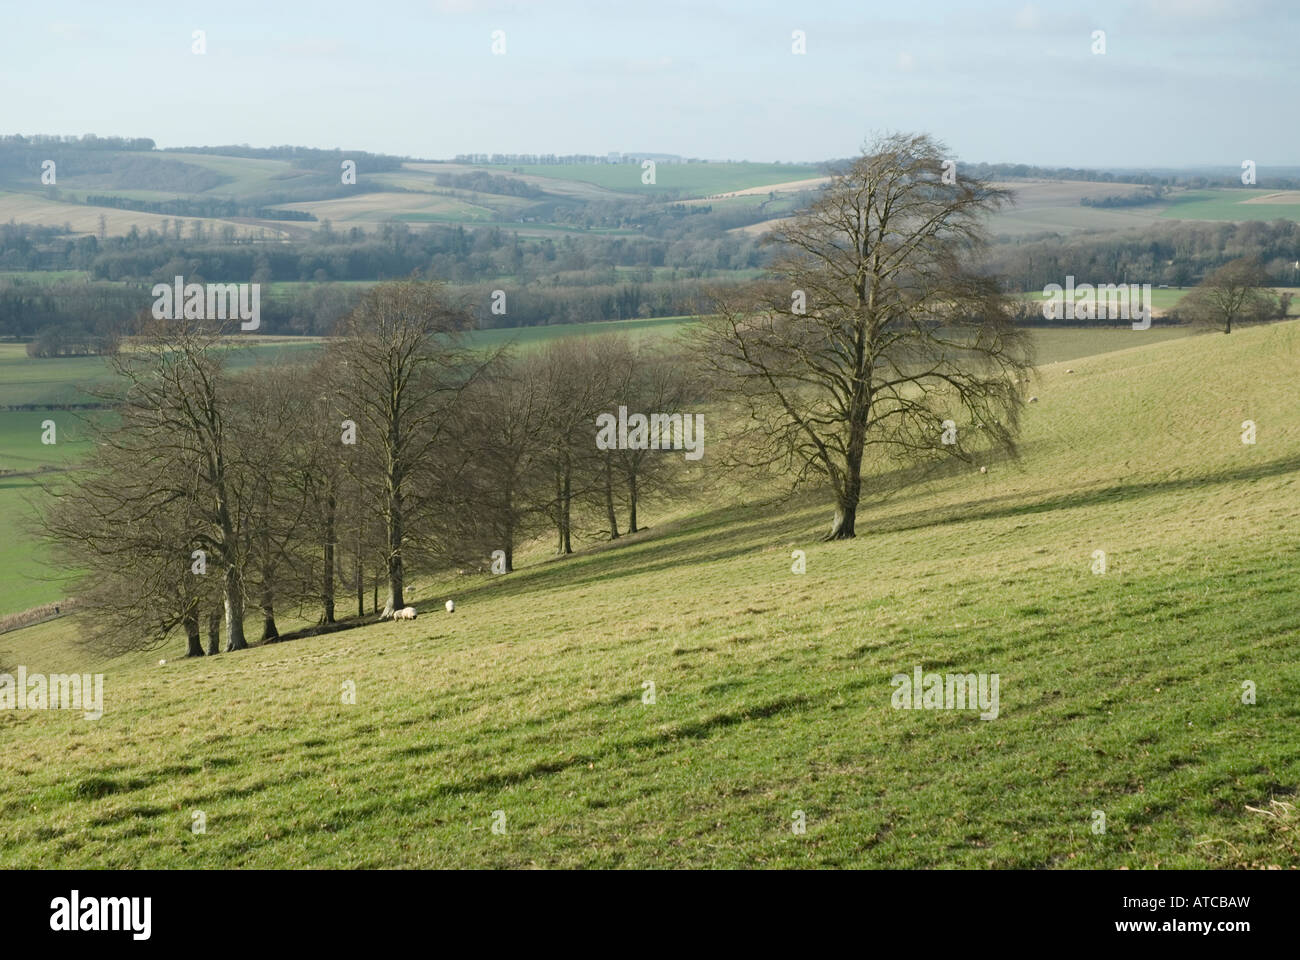 South Downs view - Stock Image